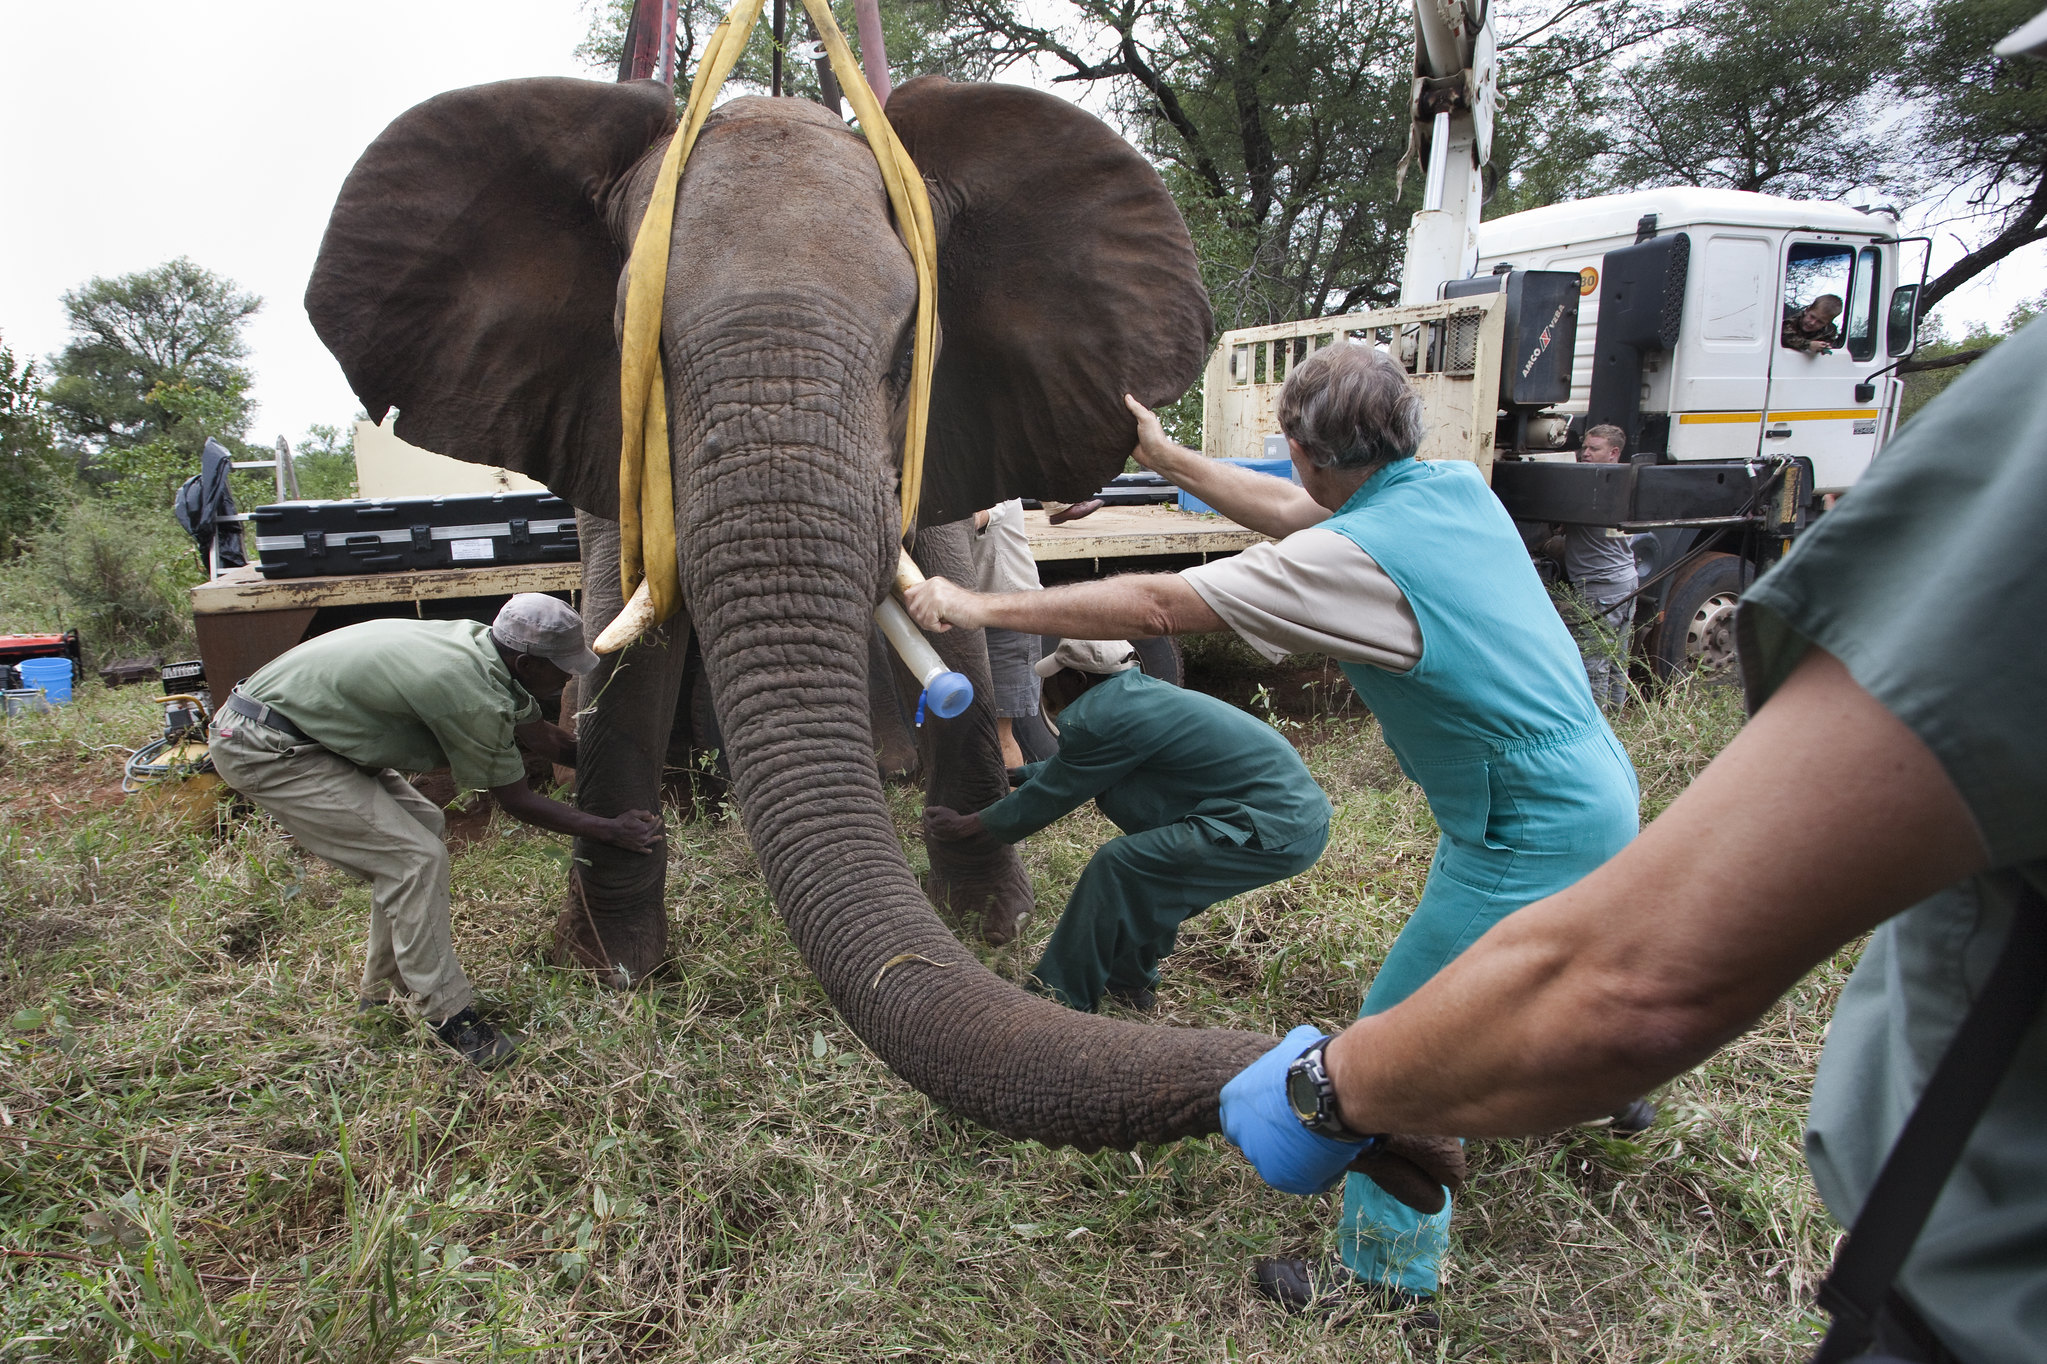 Photo of Elephant being prepared for vasectomy